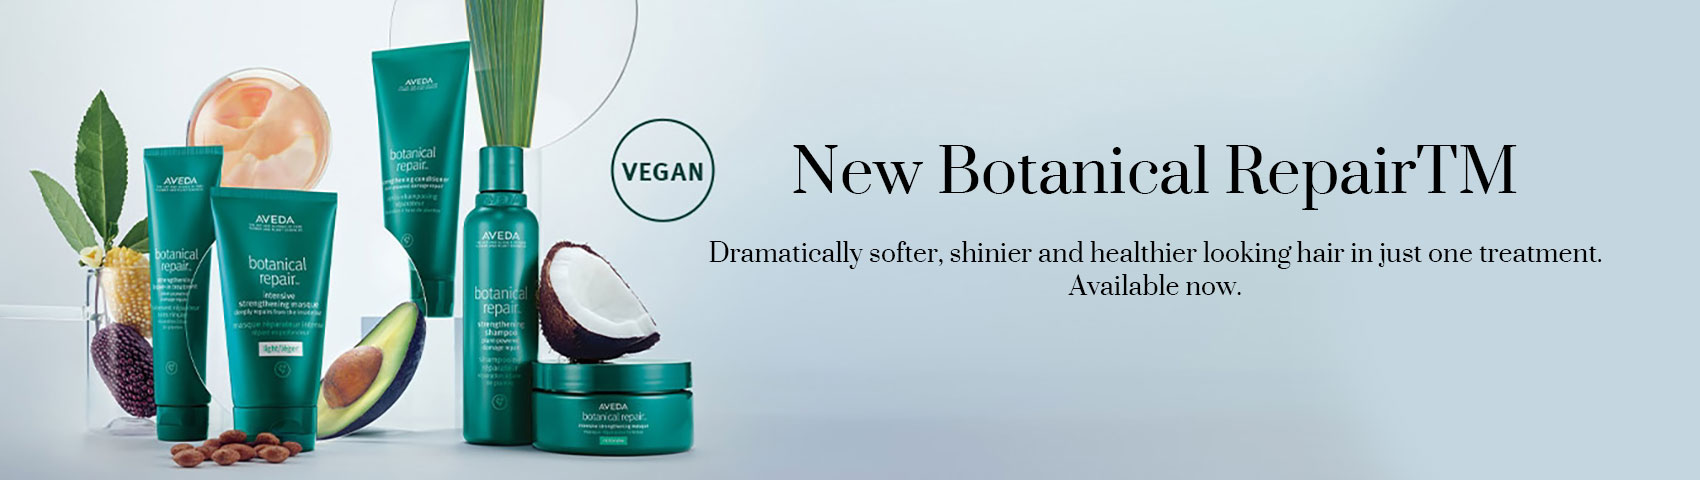 Dramatically softer shinier and healthier looking hair in just one treatment. Available now